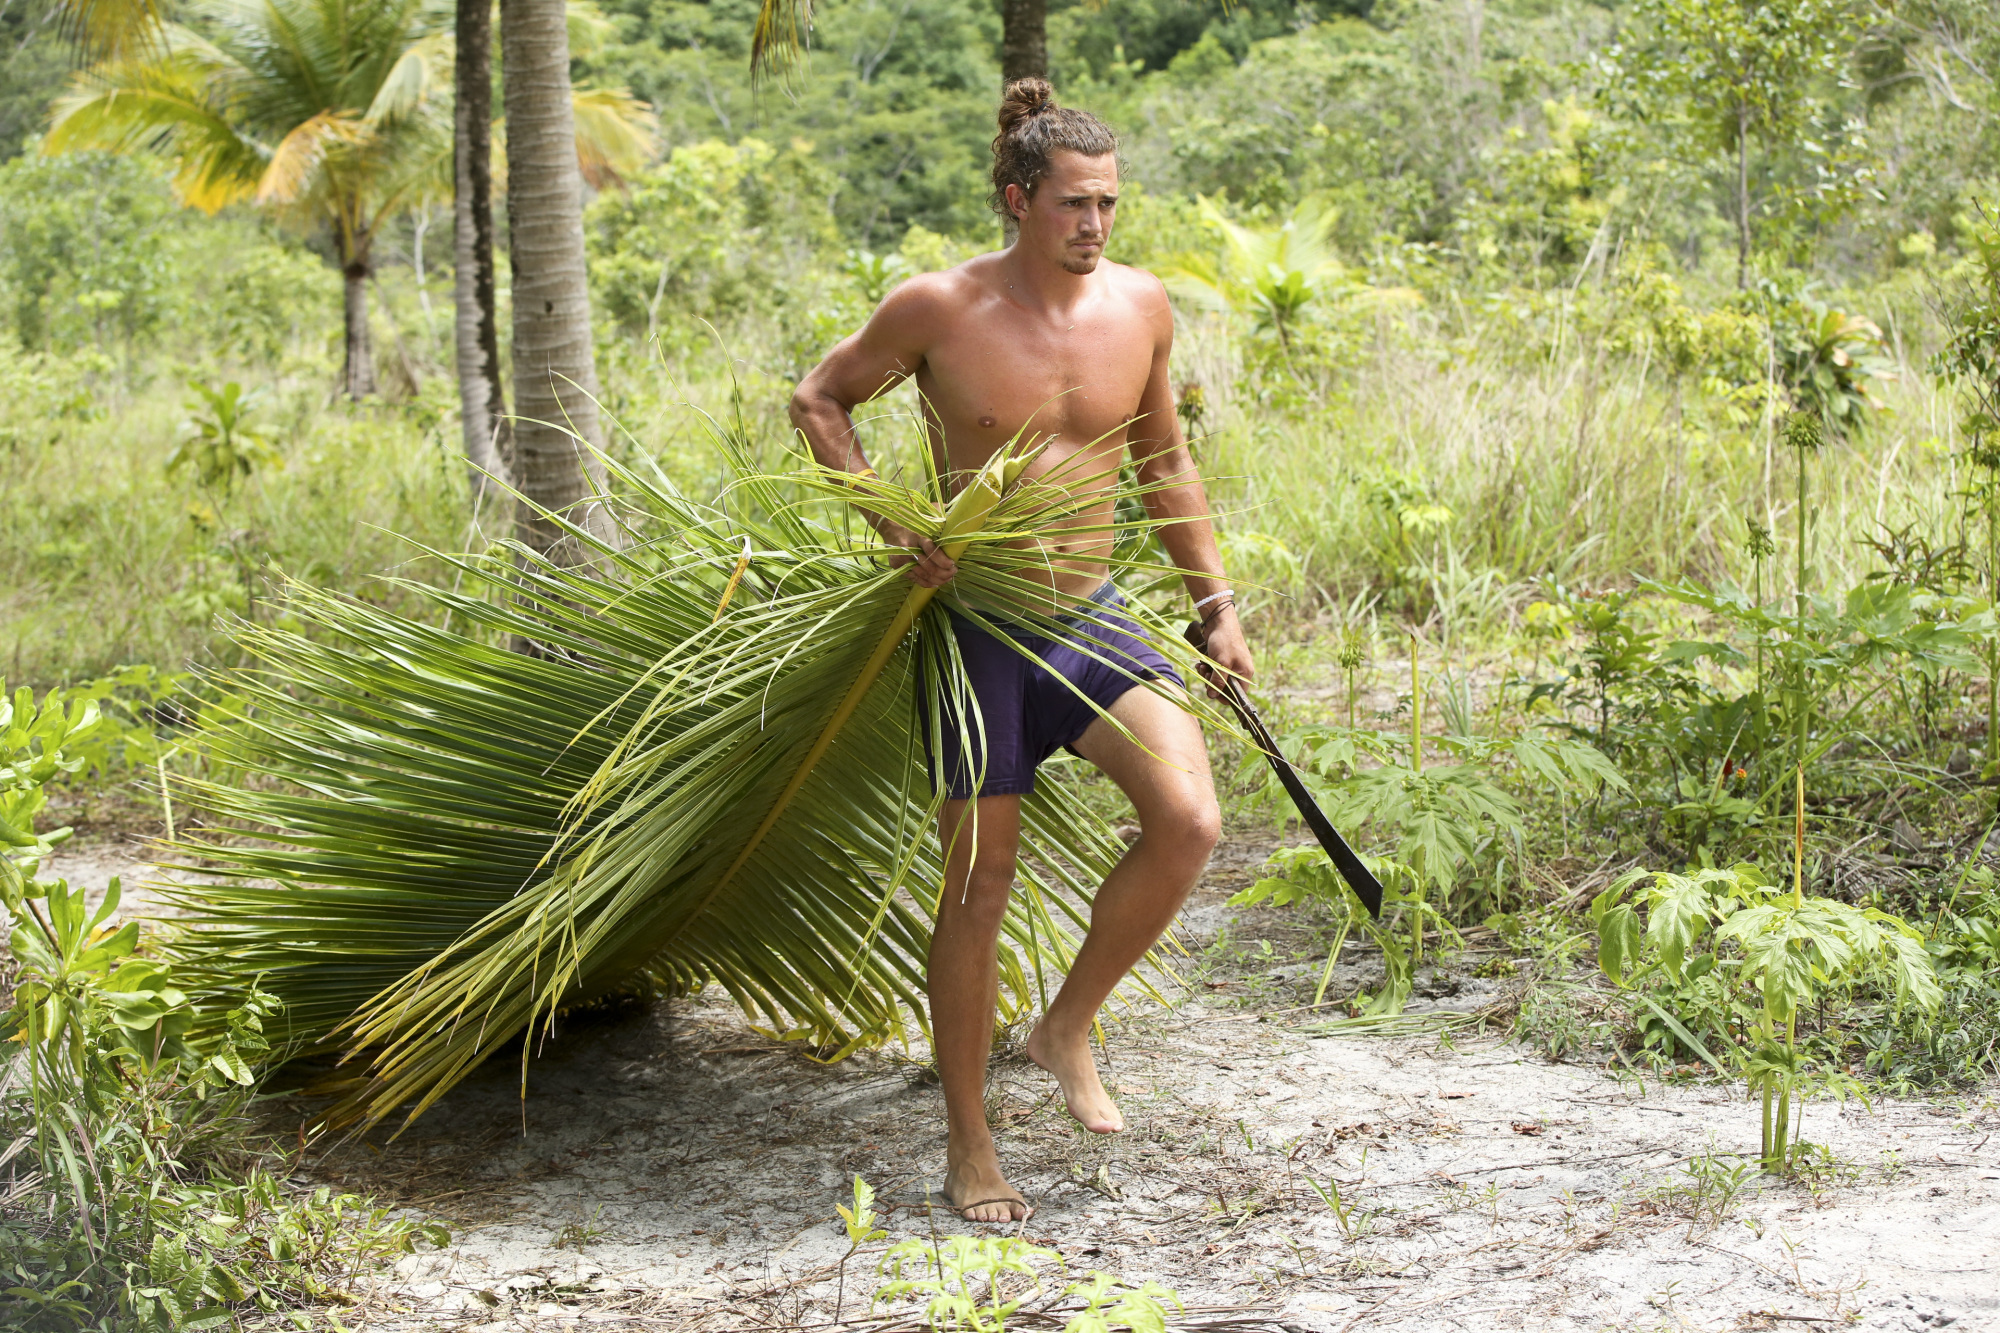 Joe Anglim works at camp on Survivor: Second Chance